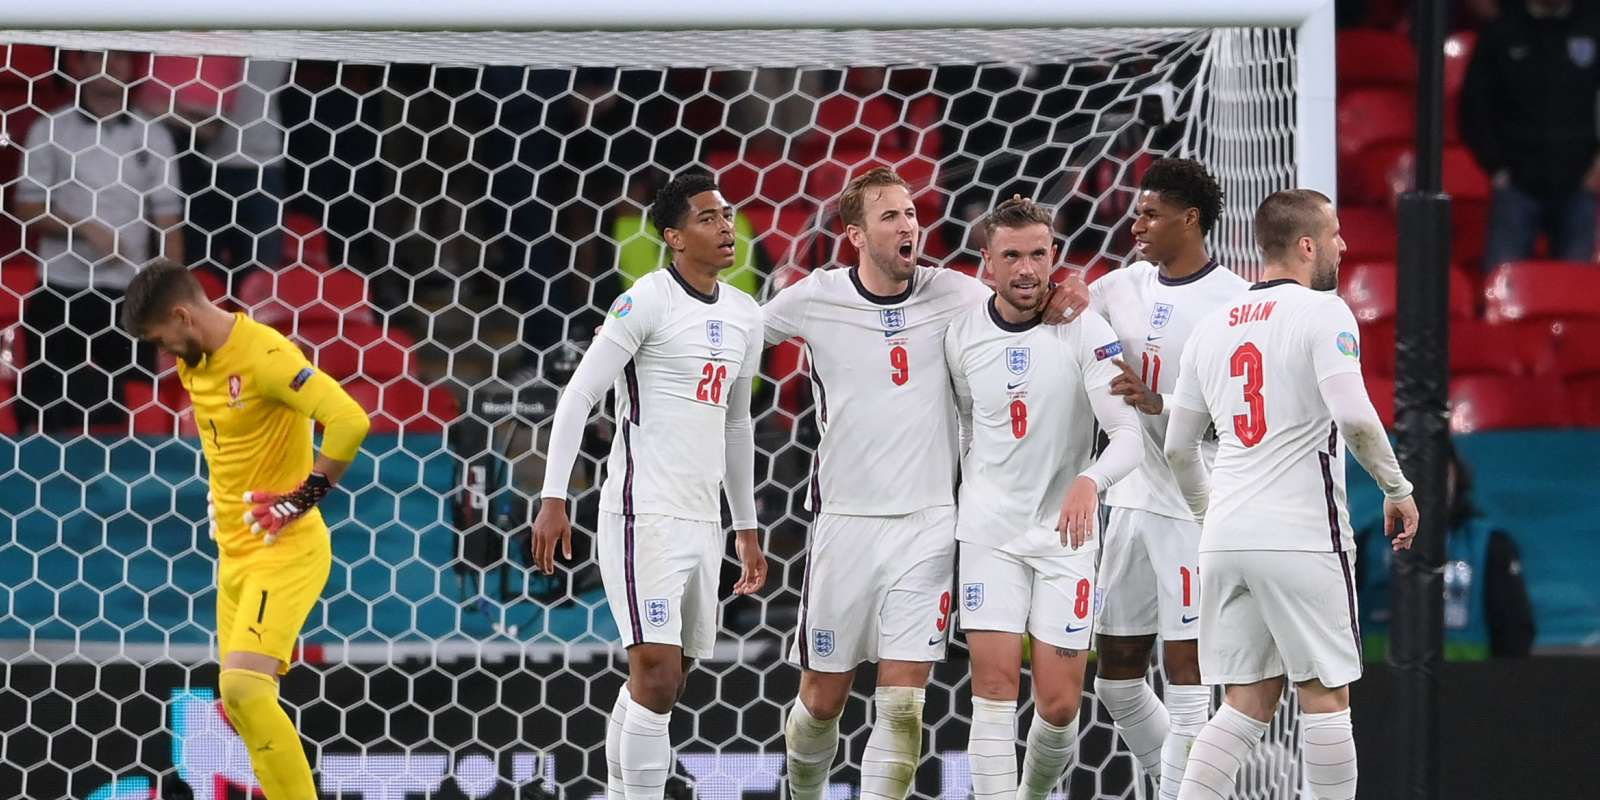 England's midfielder Jordan Henderson (C) celebrates scoring with his team-mates beofre the goal was called offside during the UEFA EURO 2020 Group D football match between Czech Republic and England at Wembley Stadium in London on June 22, 2021. / AFP / POOL / Laurence Griffiths